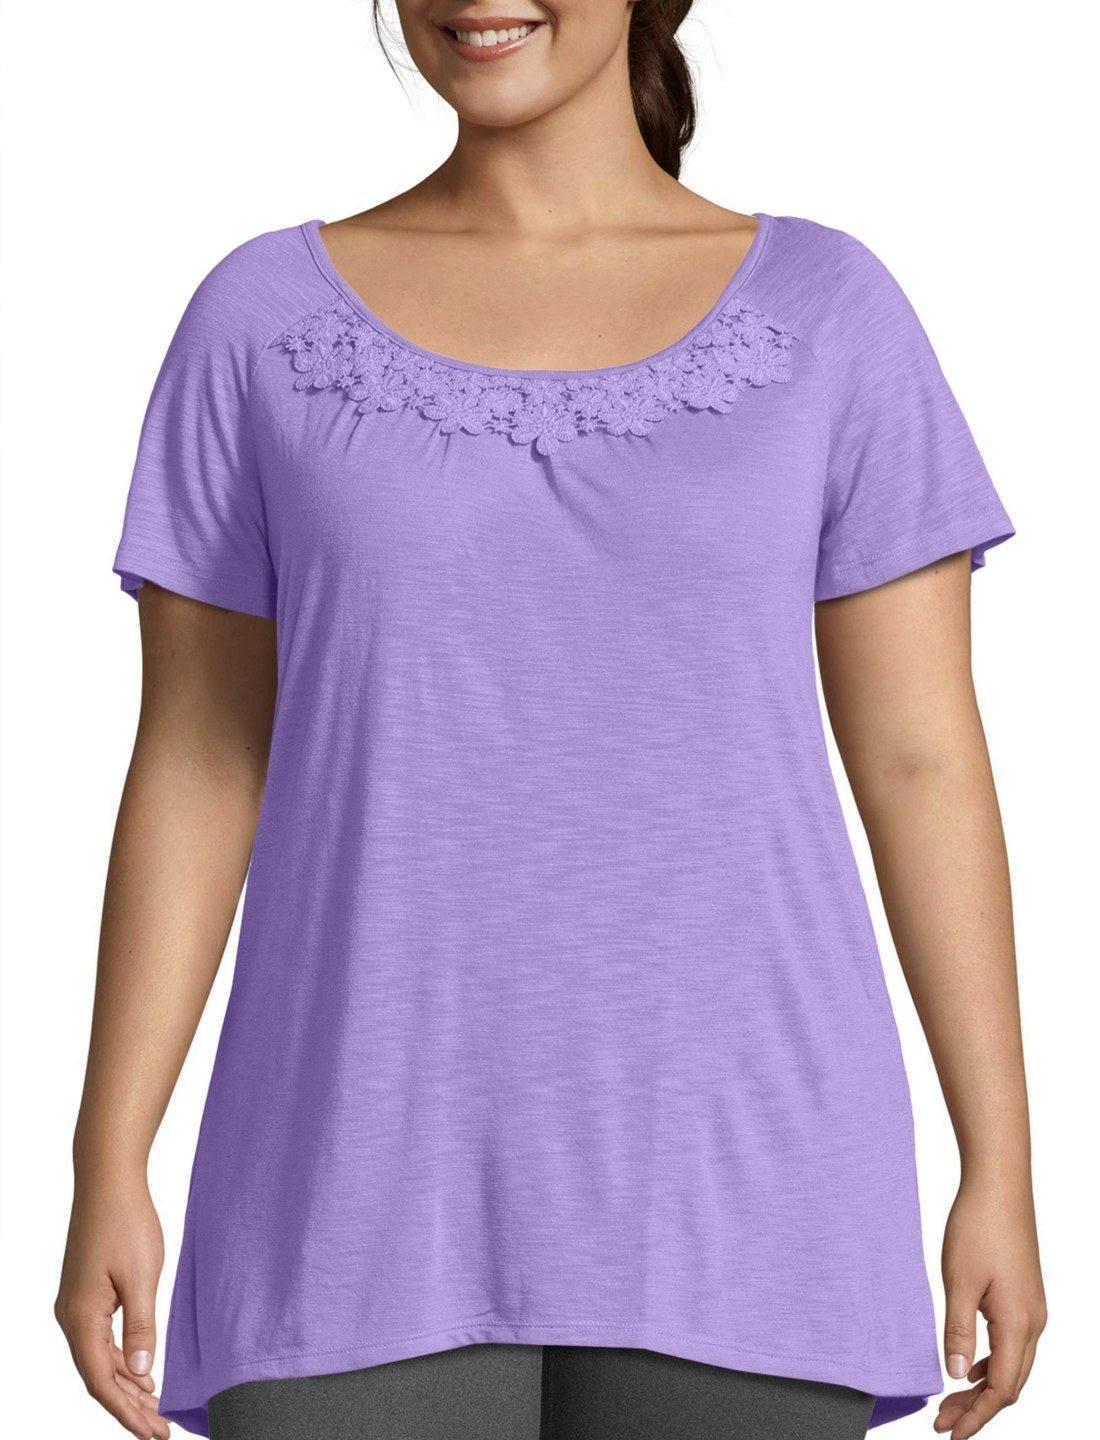 Model in the purple T-shirt with lace collar